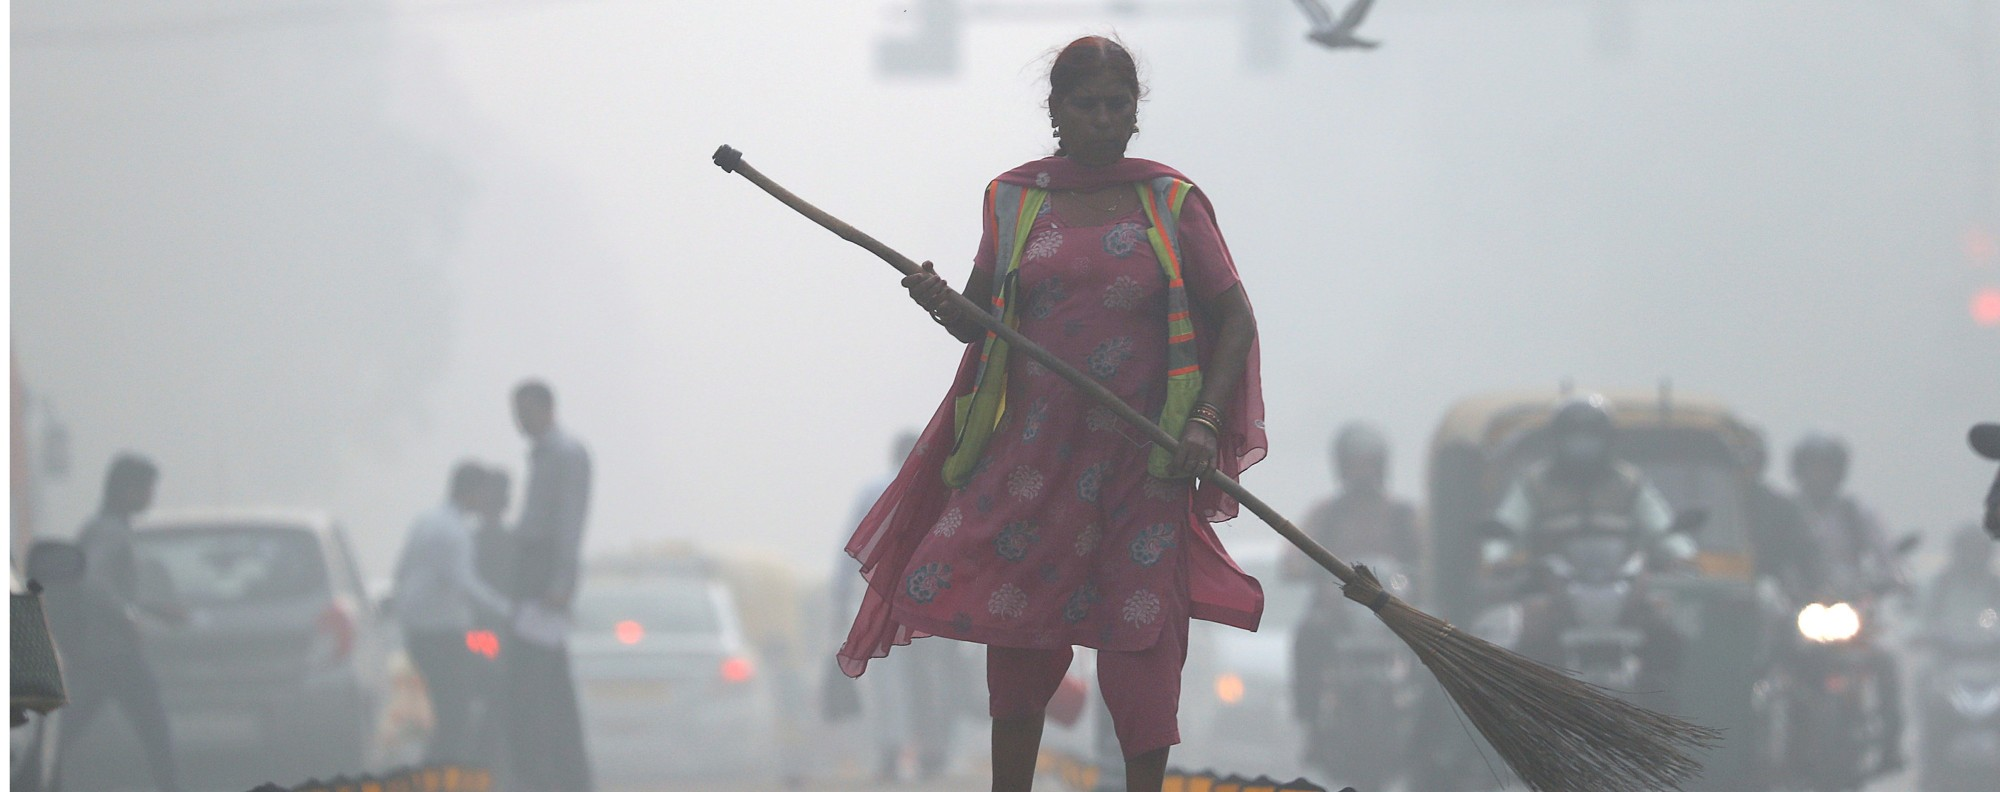 FILE PHOTO: A street cleaner works in heavy smog in Delhi, India, November 10, 2017. REUTERS/Cathal McNaughton/File Photo